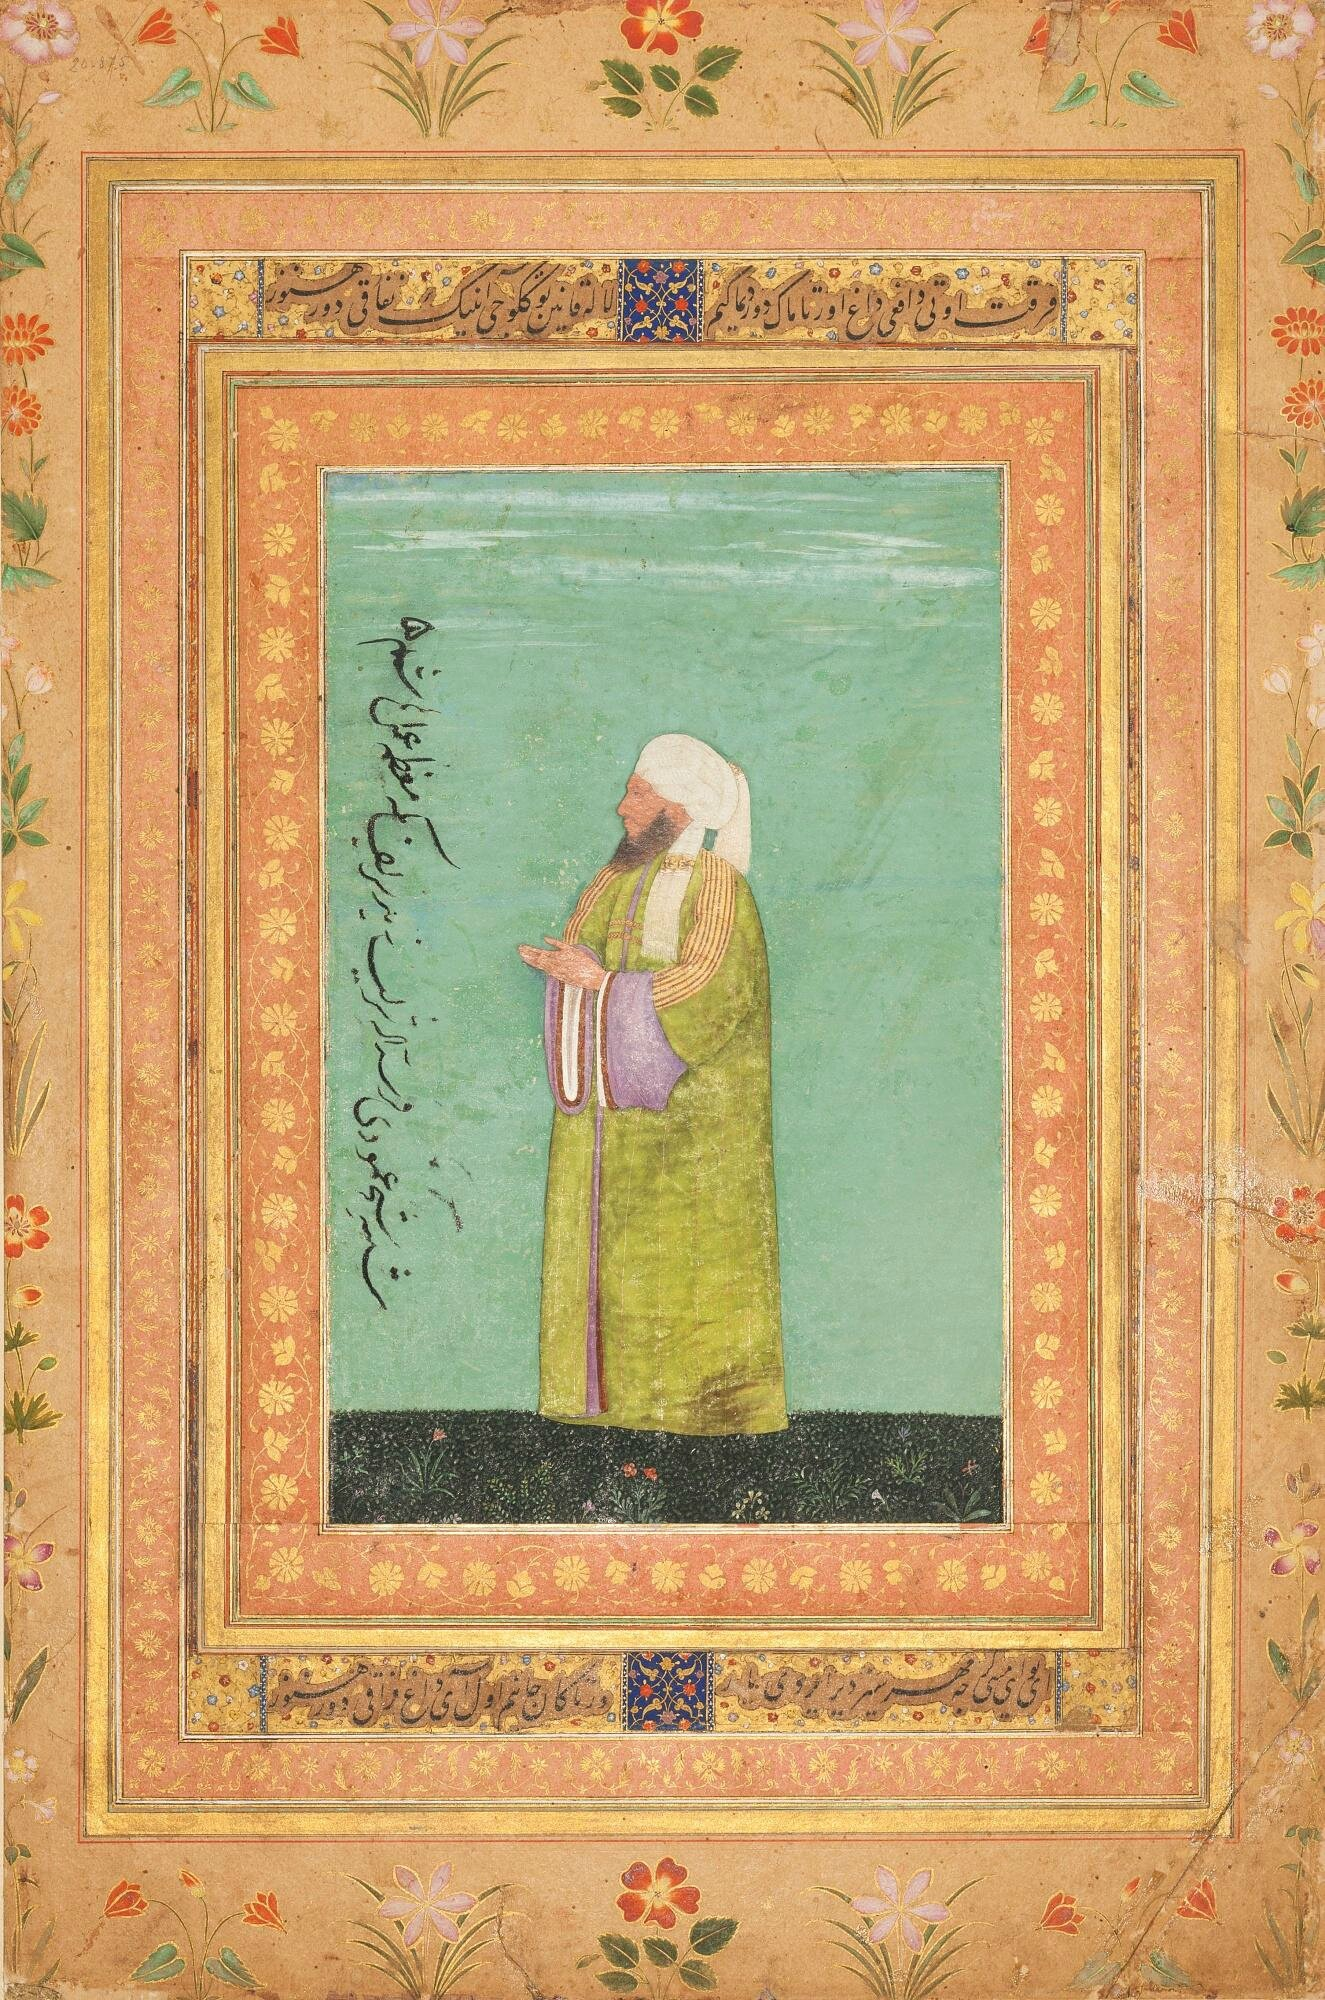 Sotheby's to present second offering of Indian miniature paintings from the Estate of Dr. Claus Virch